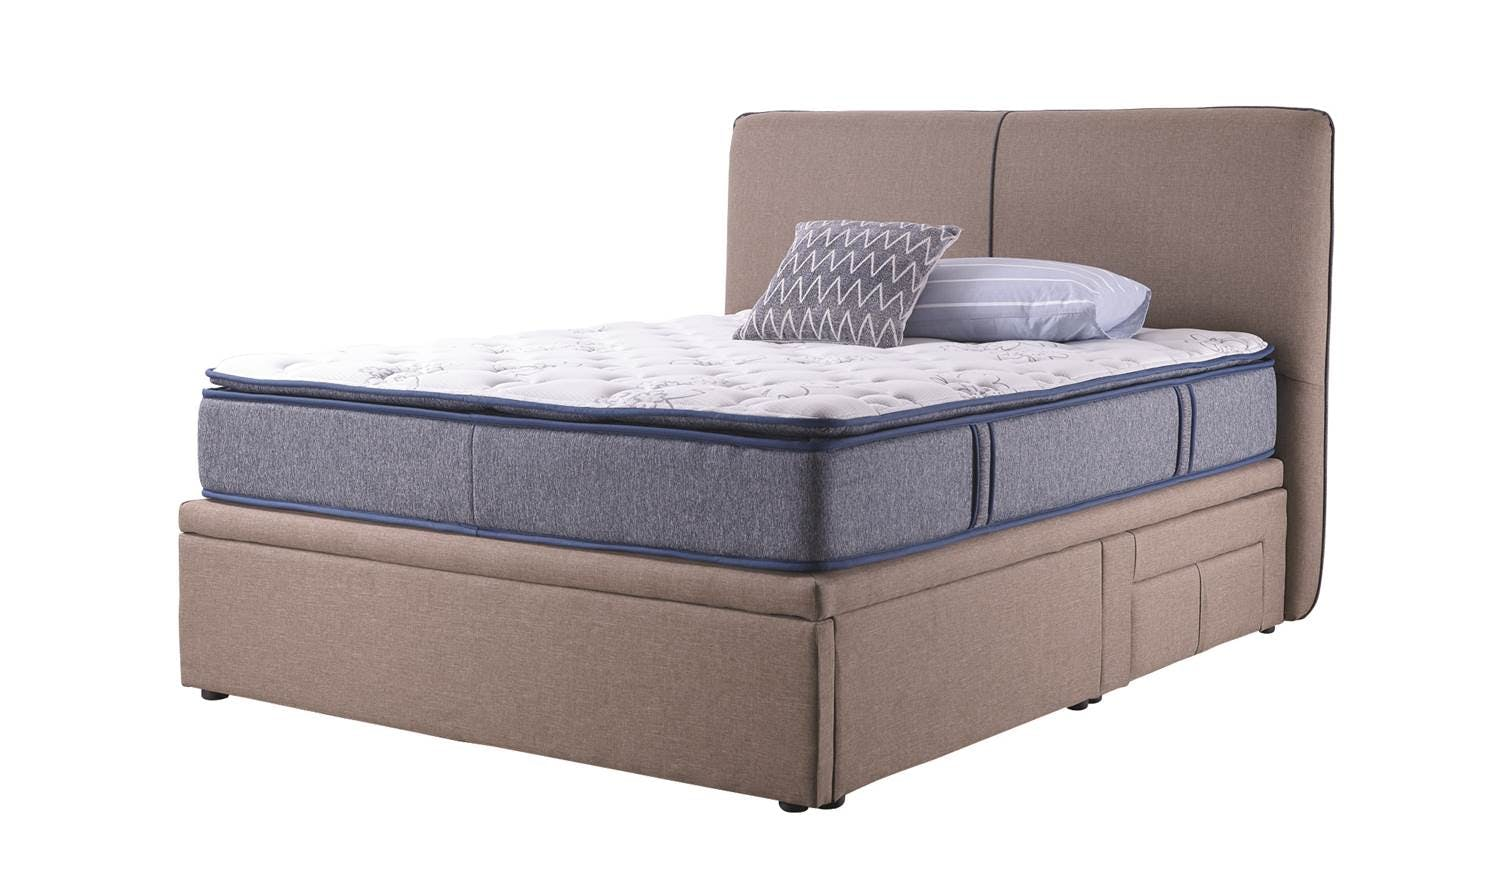 oregon queen size storage bed frame colour golden brown 10239 | oregon queen size storage bed frame colour golden brown fit fill bg 0fff w 1512 h 869 auto format compress